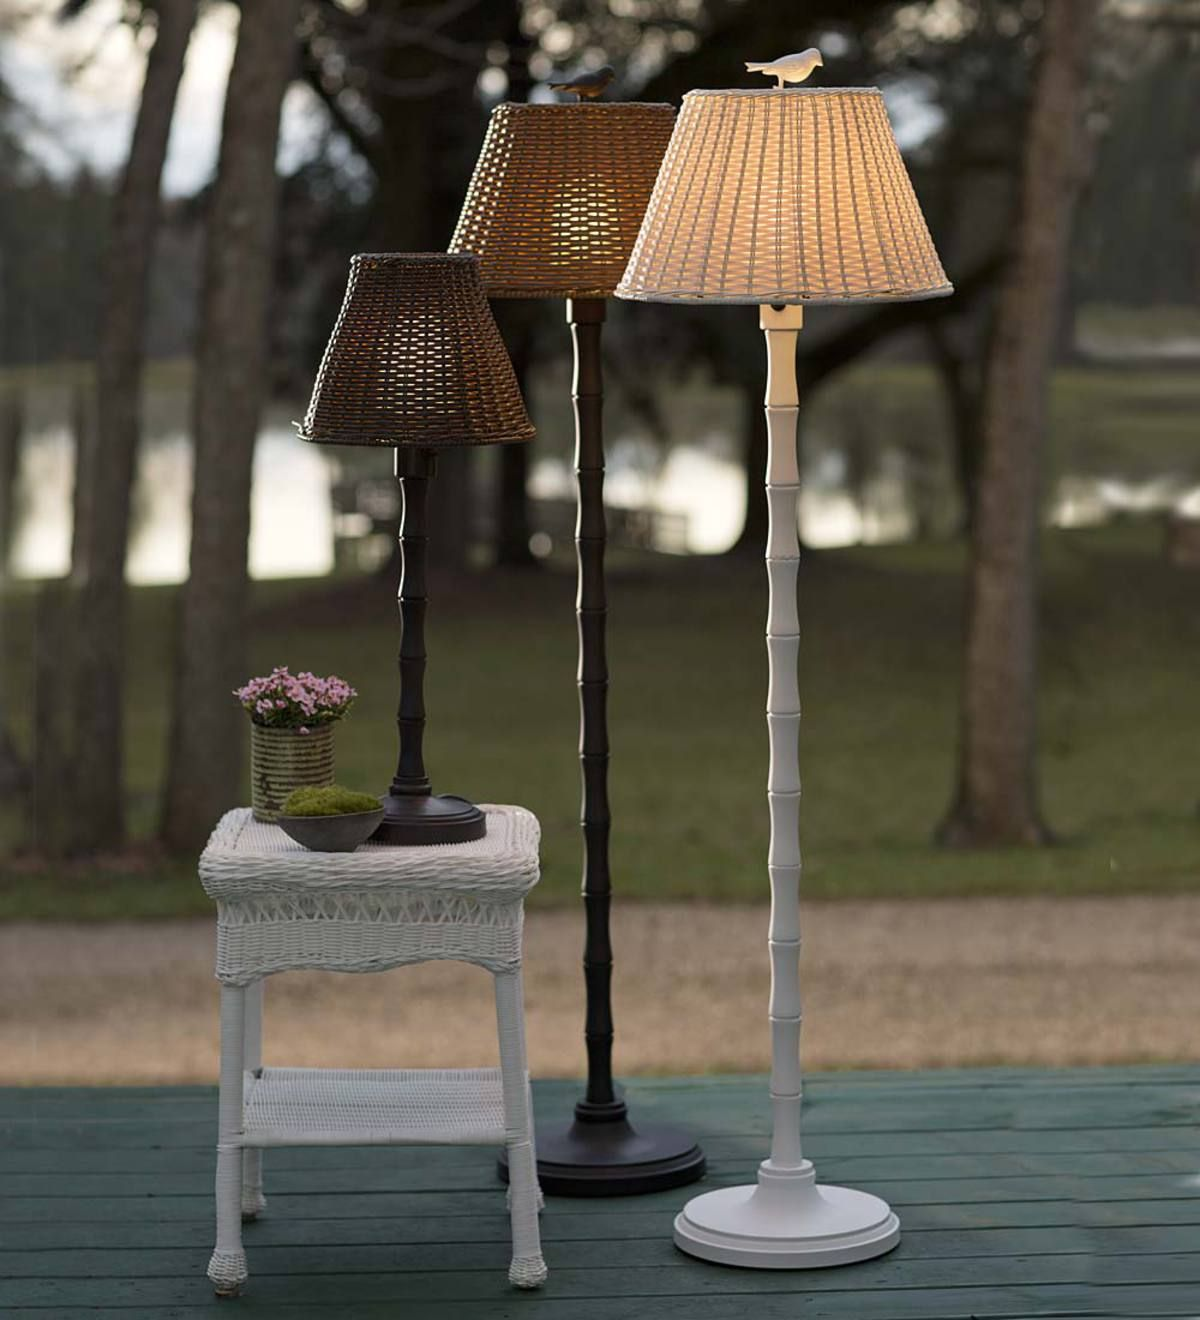 Light Up Your Outdoor Living Areas With Our Completely Waterproof Outdoor Wicker Lamp That Stands Up To The Outdoor Floor Lamps Wicker Floor Lamp Outdoor Lamp